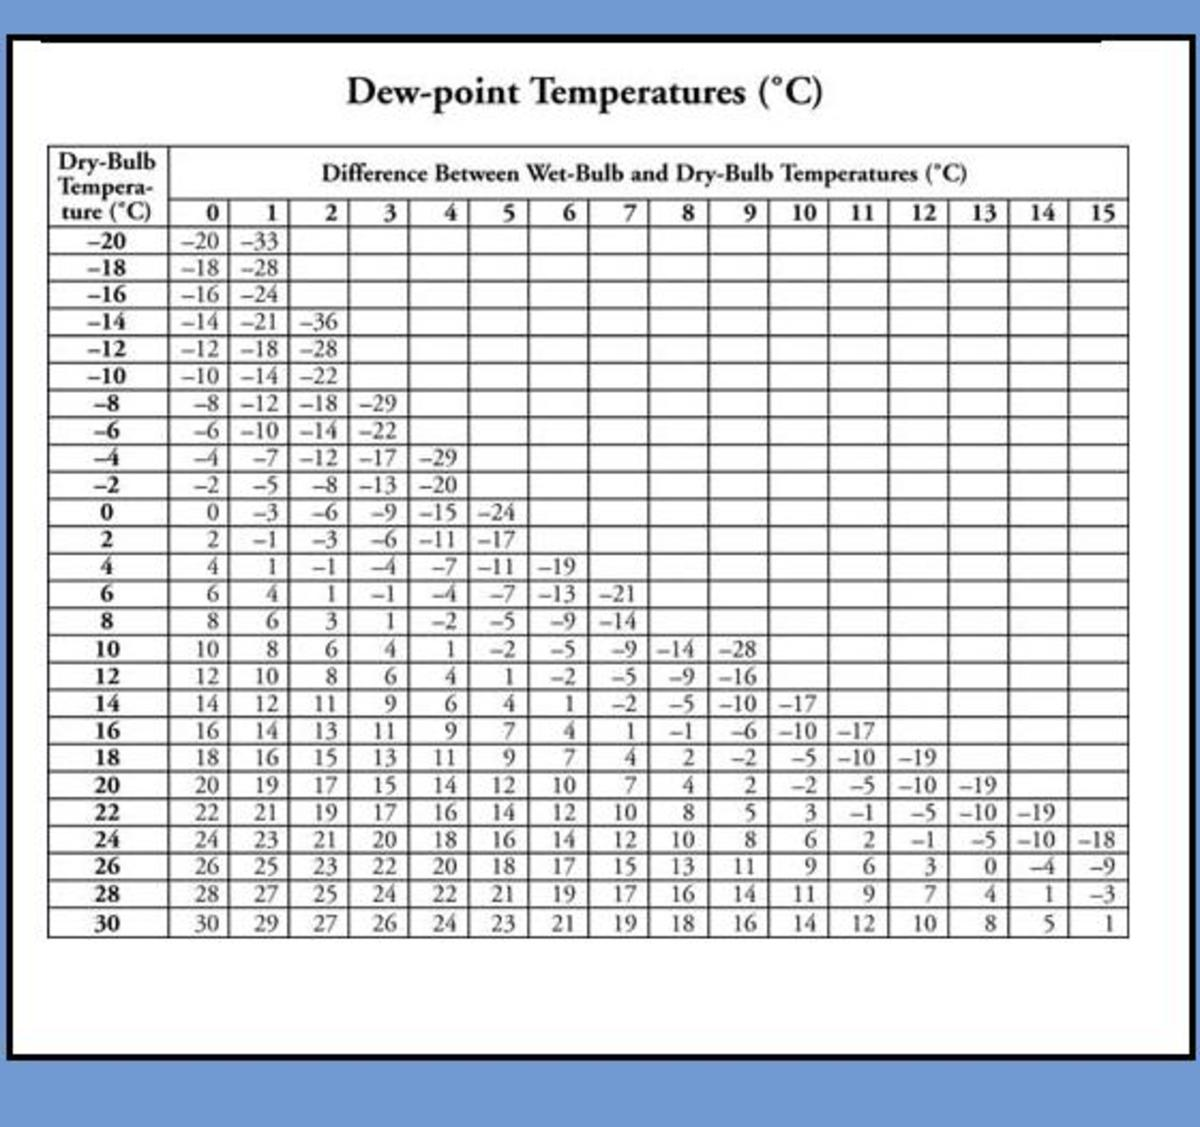 Find the dewpoint temperature in degrees Celsius.